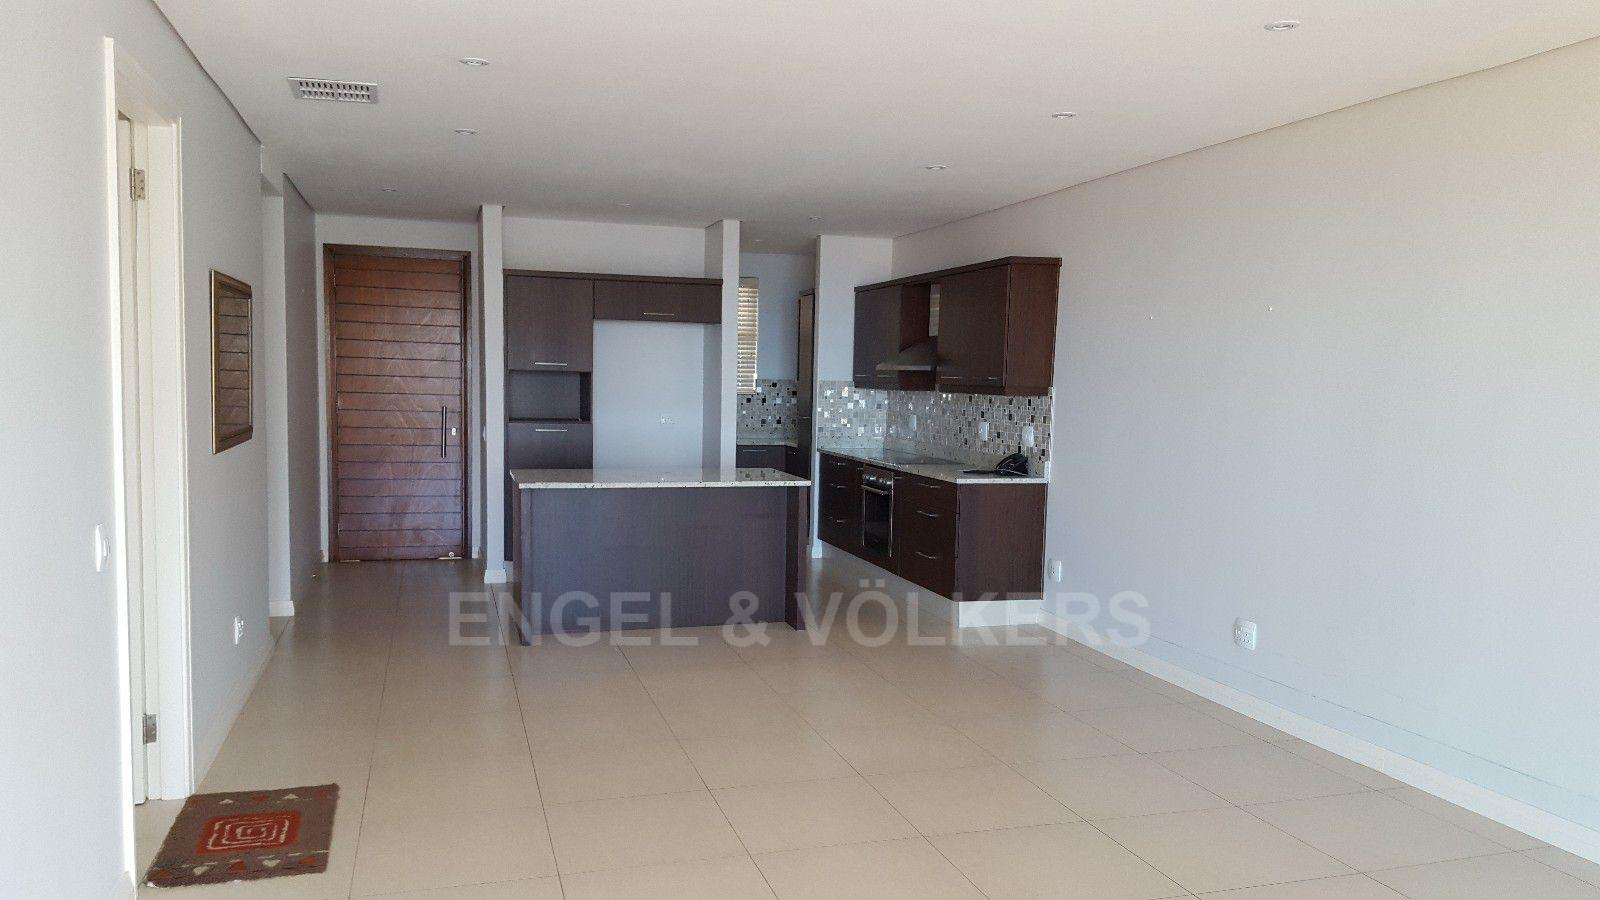 Umhlanga Rocks for sale property. Ref No: 13400359. Picture no 7